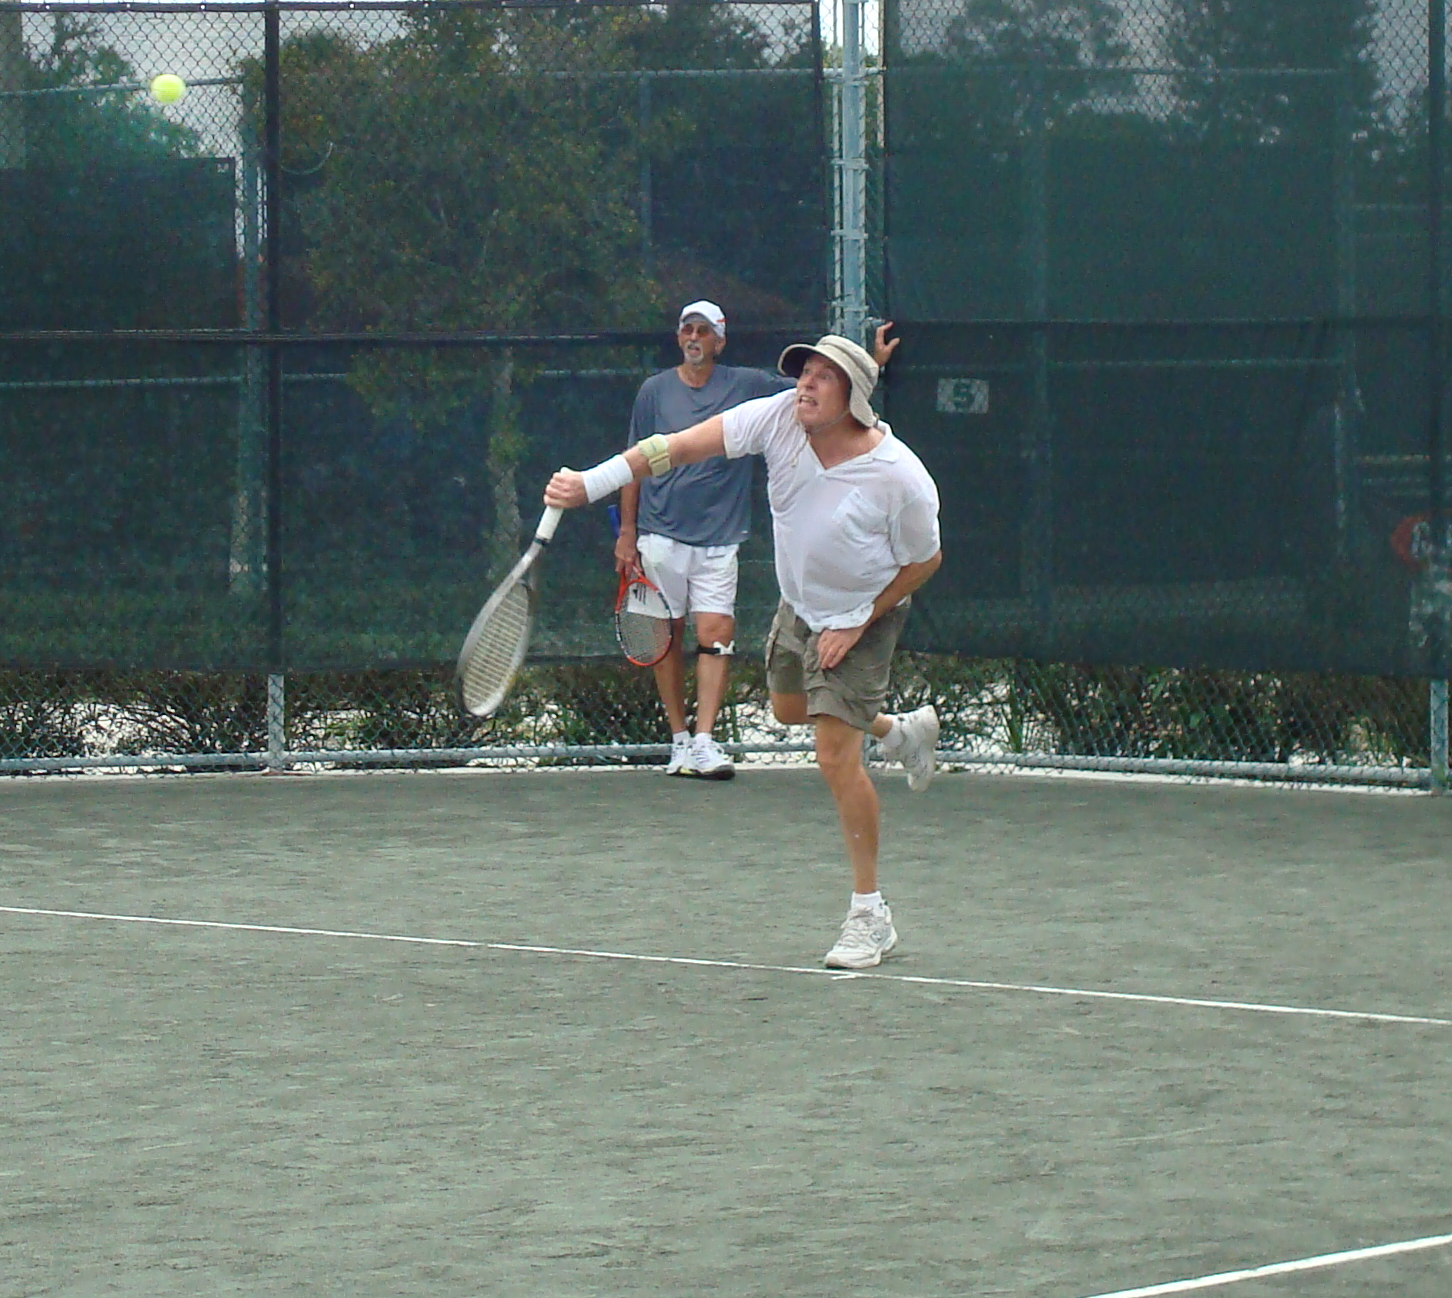 Two men playing tennis at the Payne Park Tennis Center